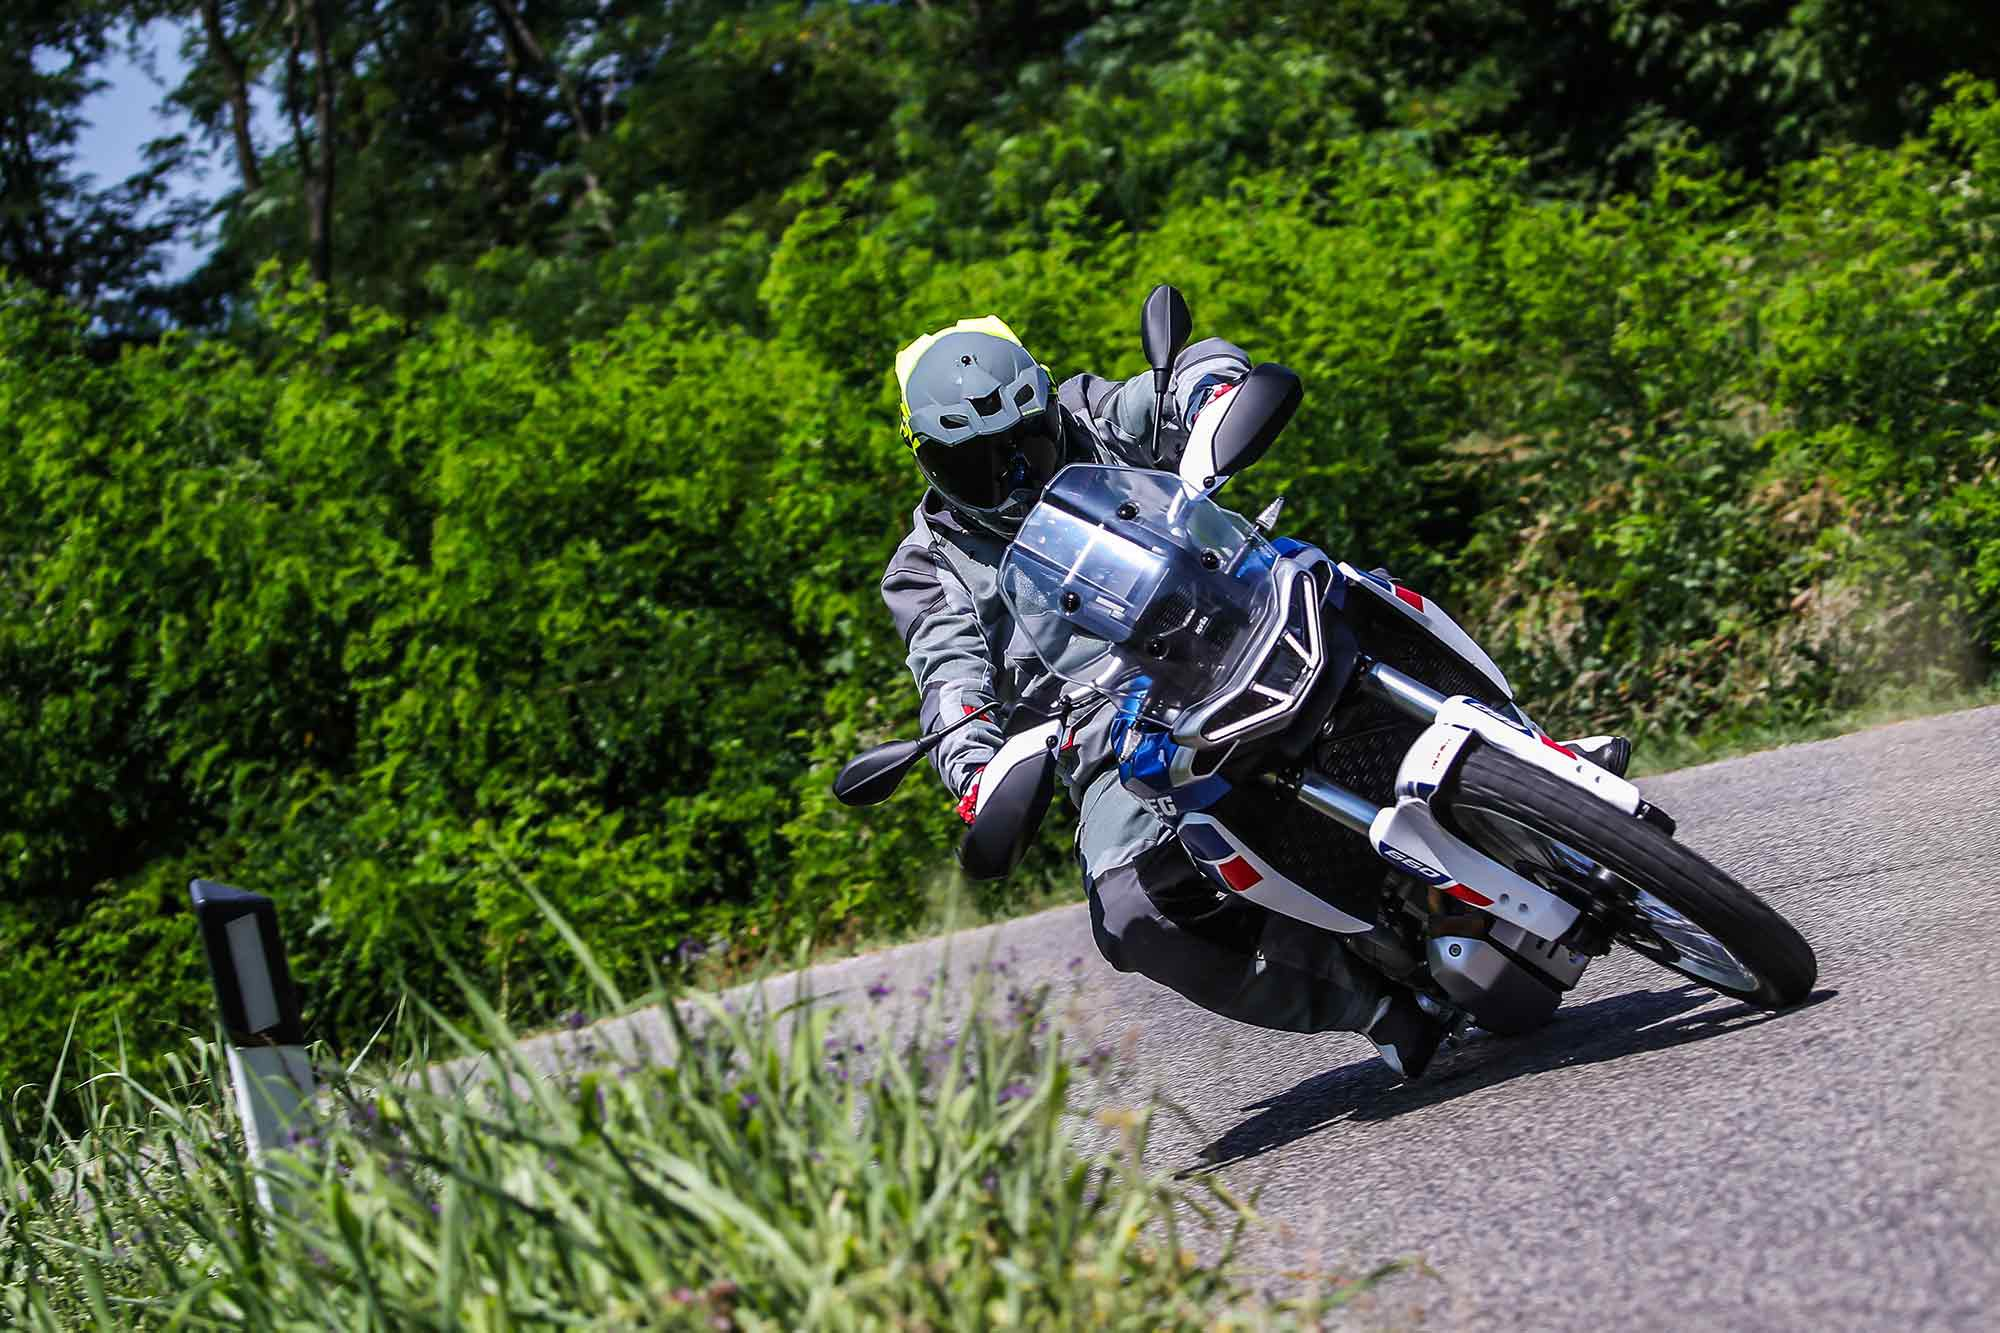 Cornering on the Tuareg 660 is much better than a 21-inch front wheel would suggest.